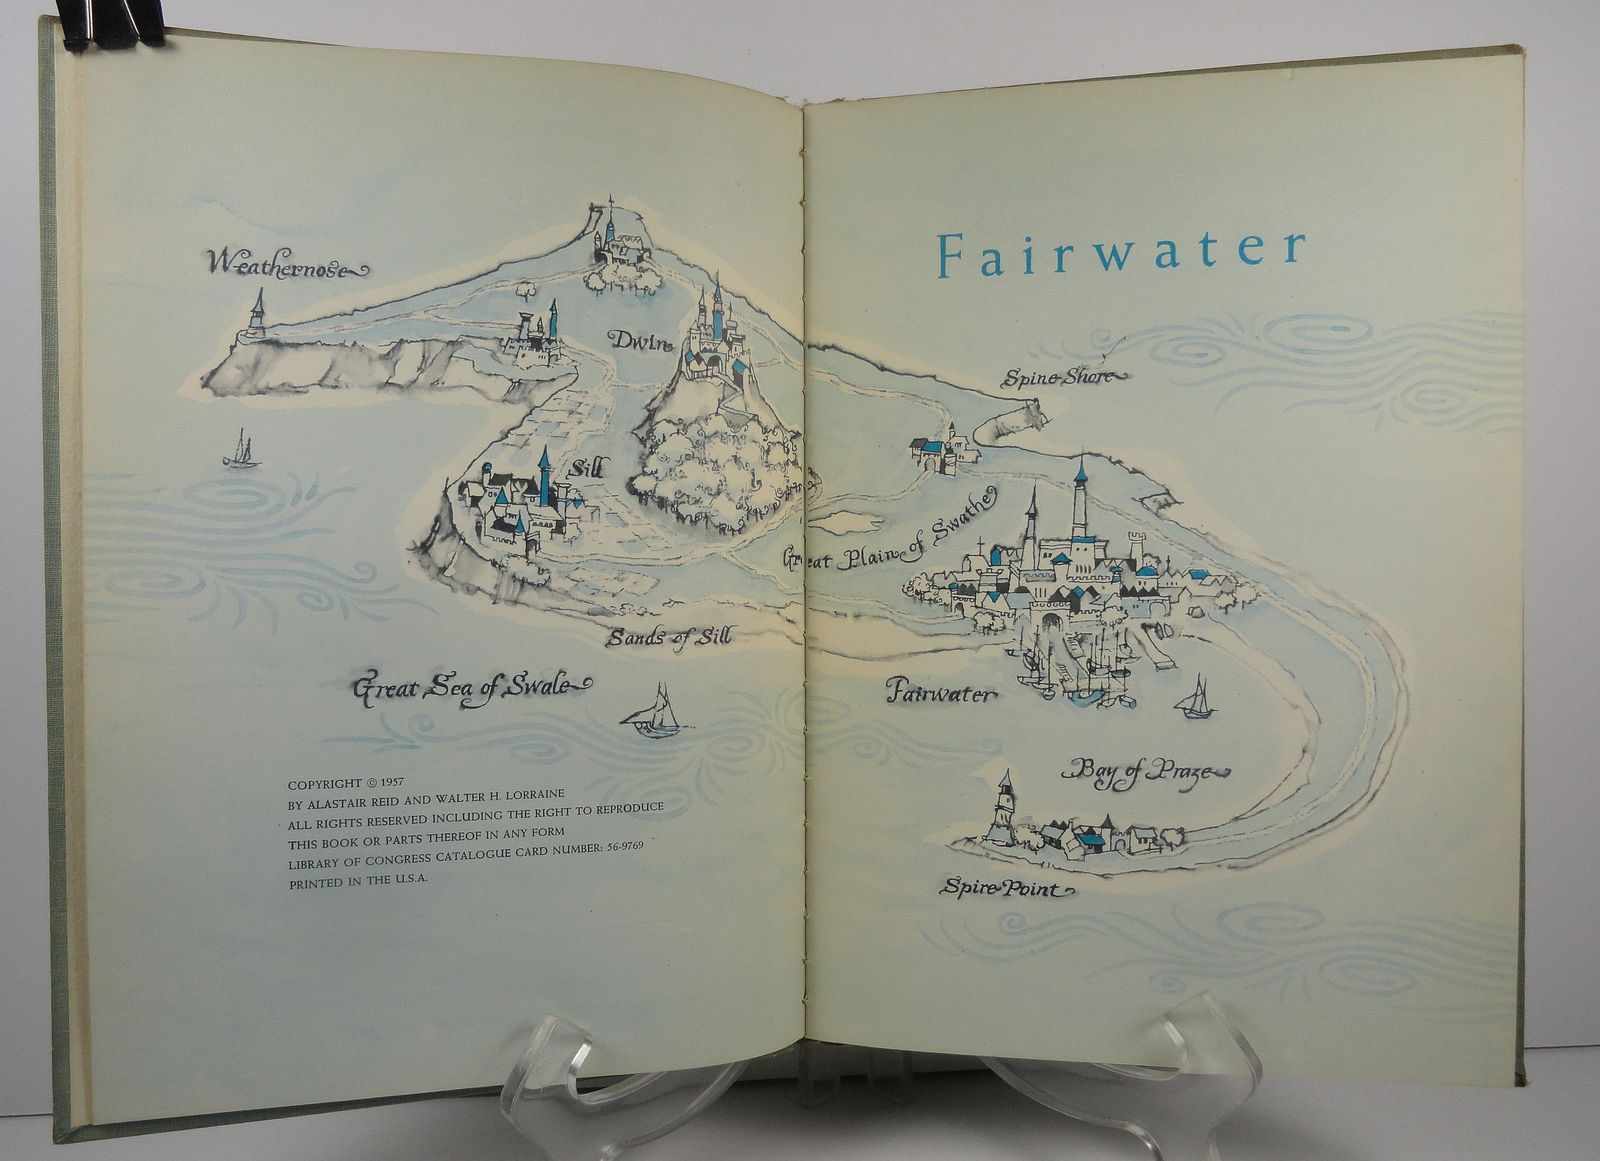 Fairwater by Alastair Reid 1957 Houghton Mifflin